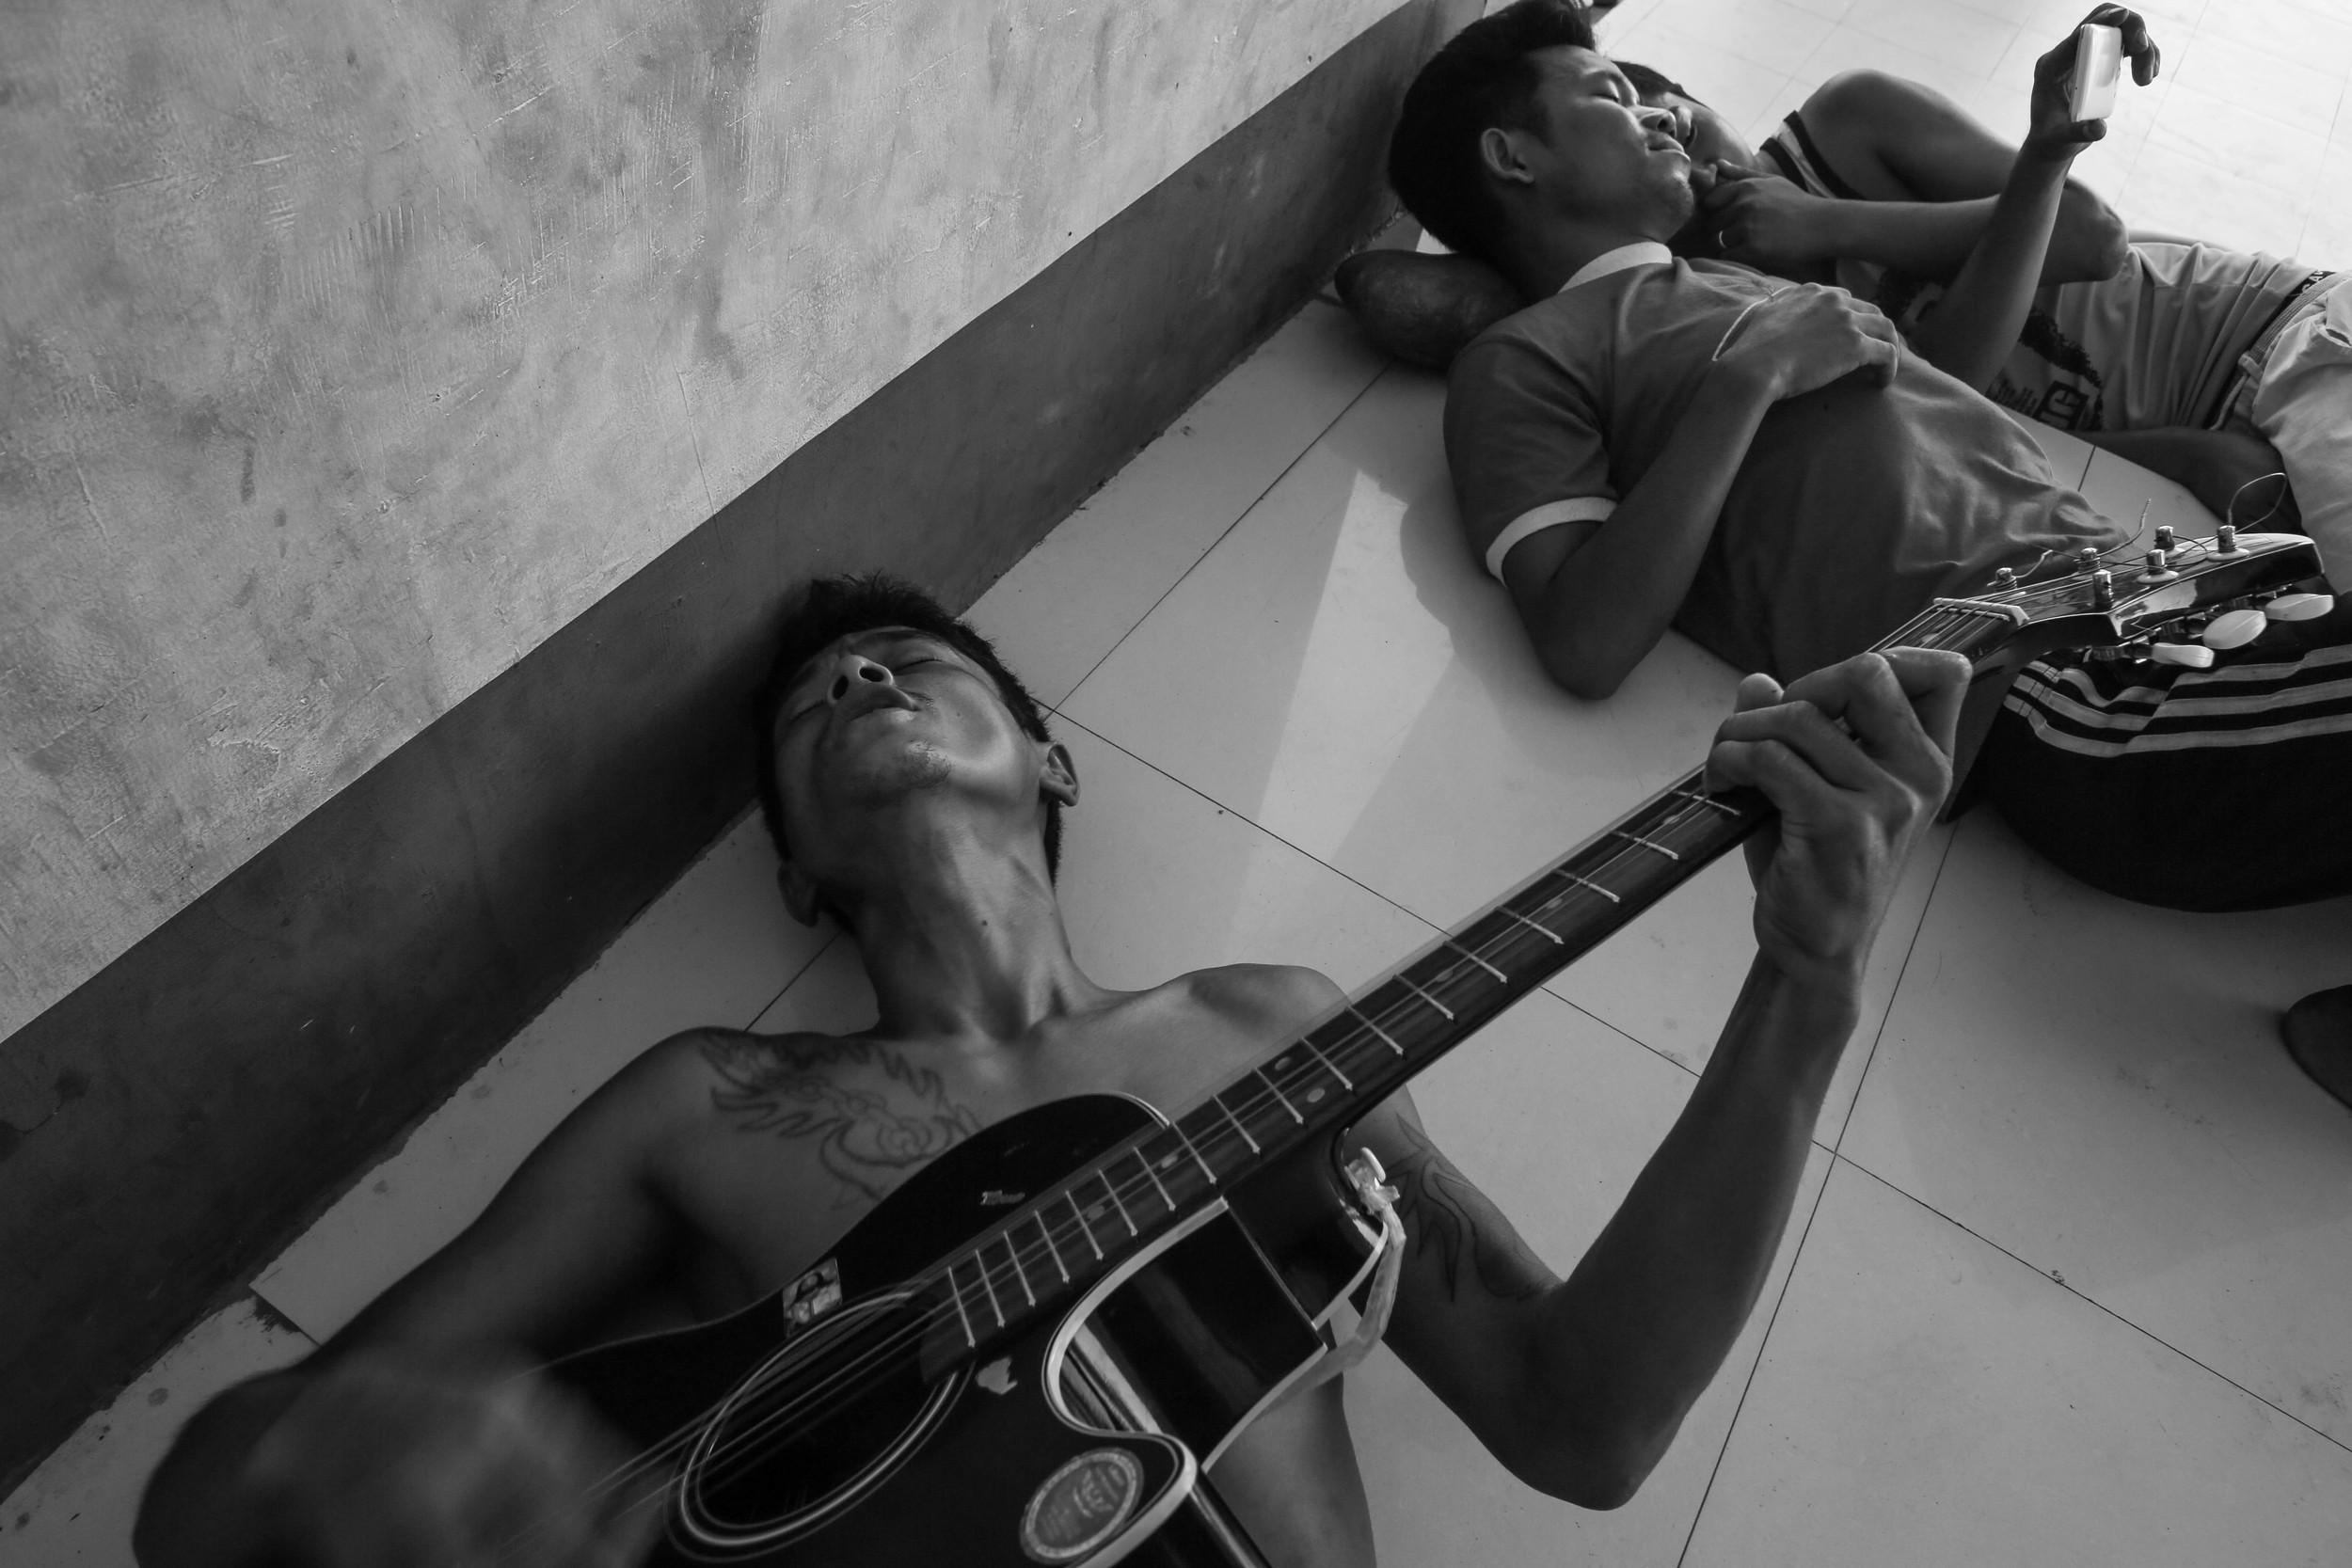 Brang San Aung, left, in his thirties, plays the guitar while singing with friends at the Aung Mintha rehab camp. Music seems to be the best way to pass the time in rehab. Brang San Aung is HIV positive and used heroin for seven years. He died from unknown causes months after this photo was taken.